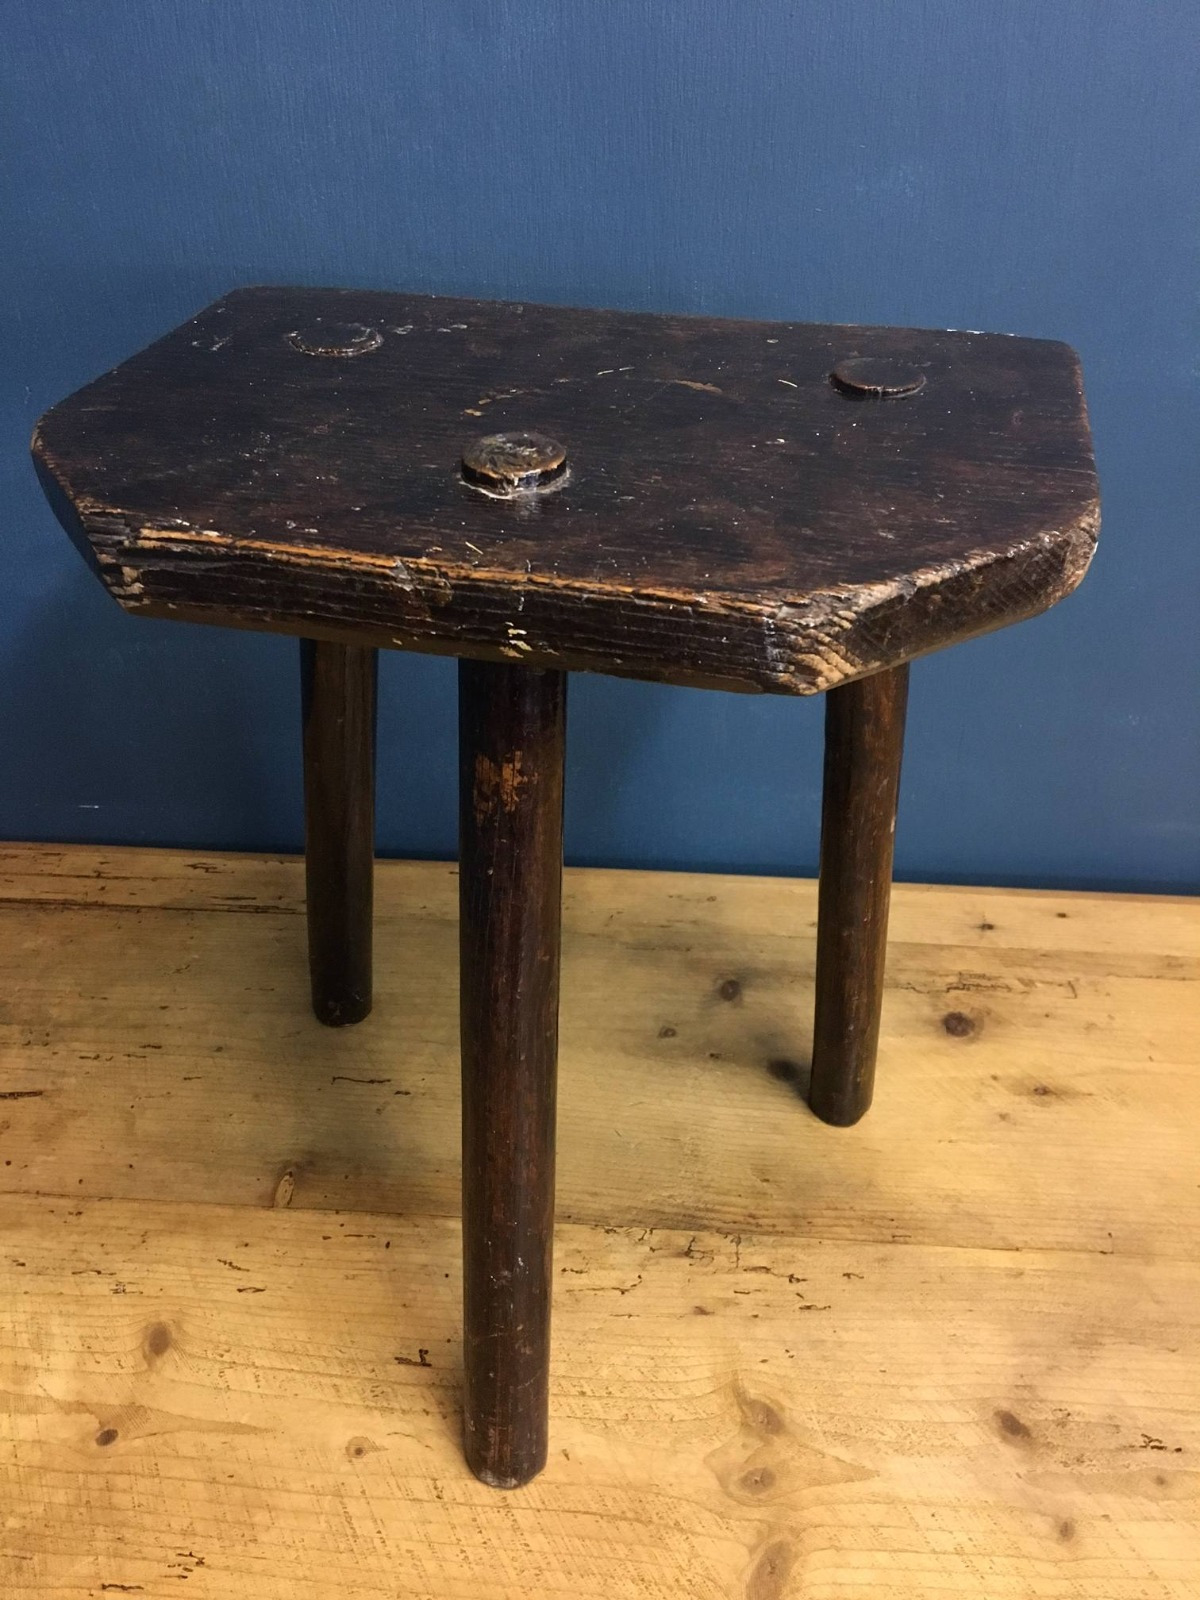 Antique Rustic Furniture for Sale Awesome Antique Rustic Wooden Three Leg Milking Stool 010